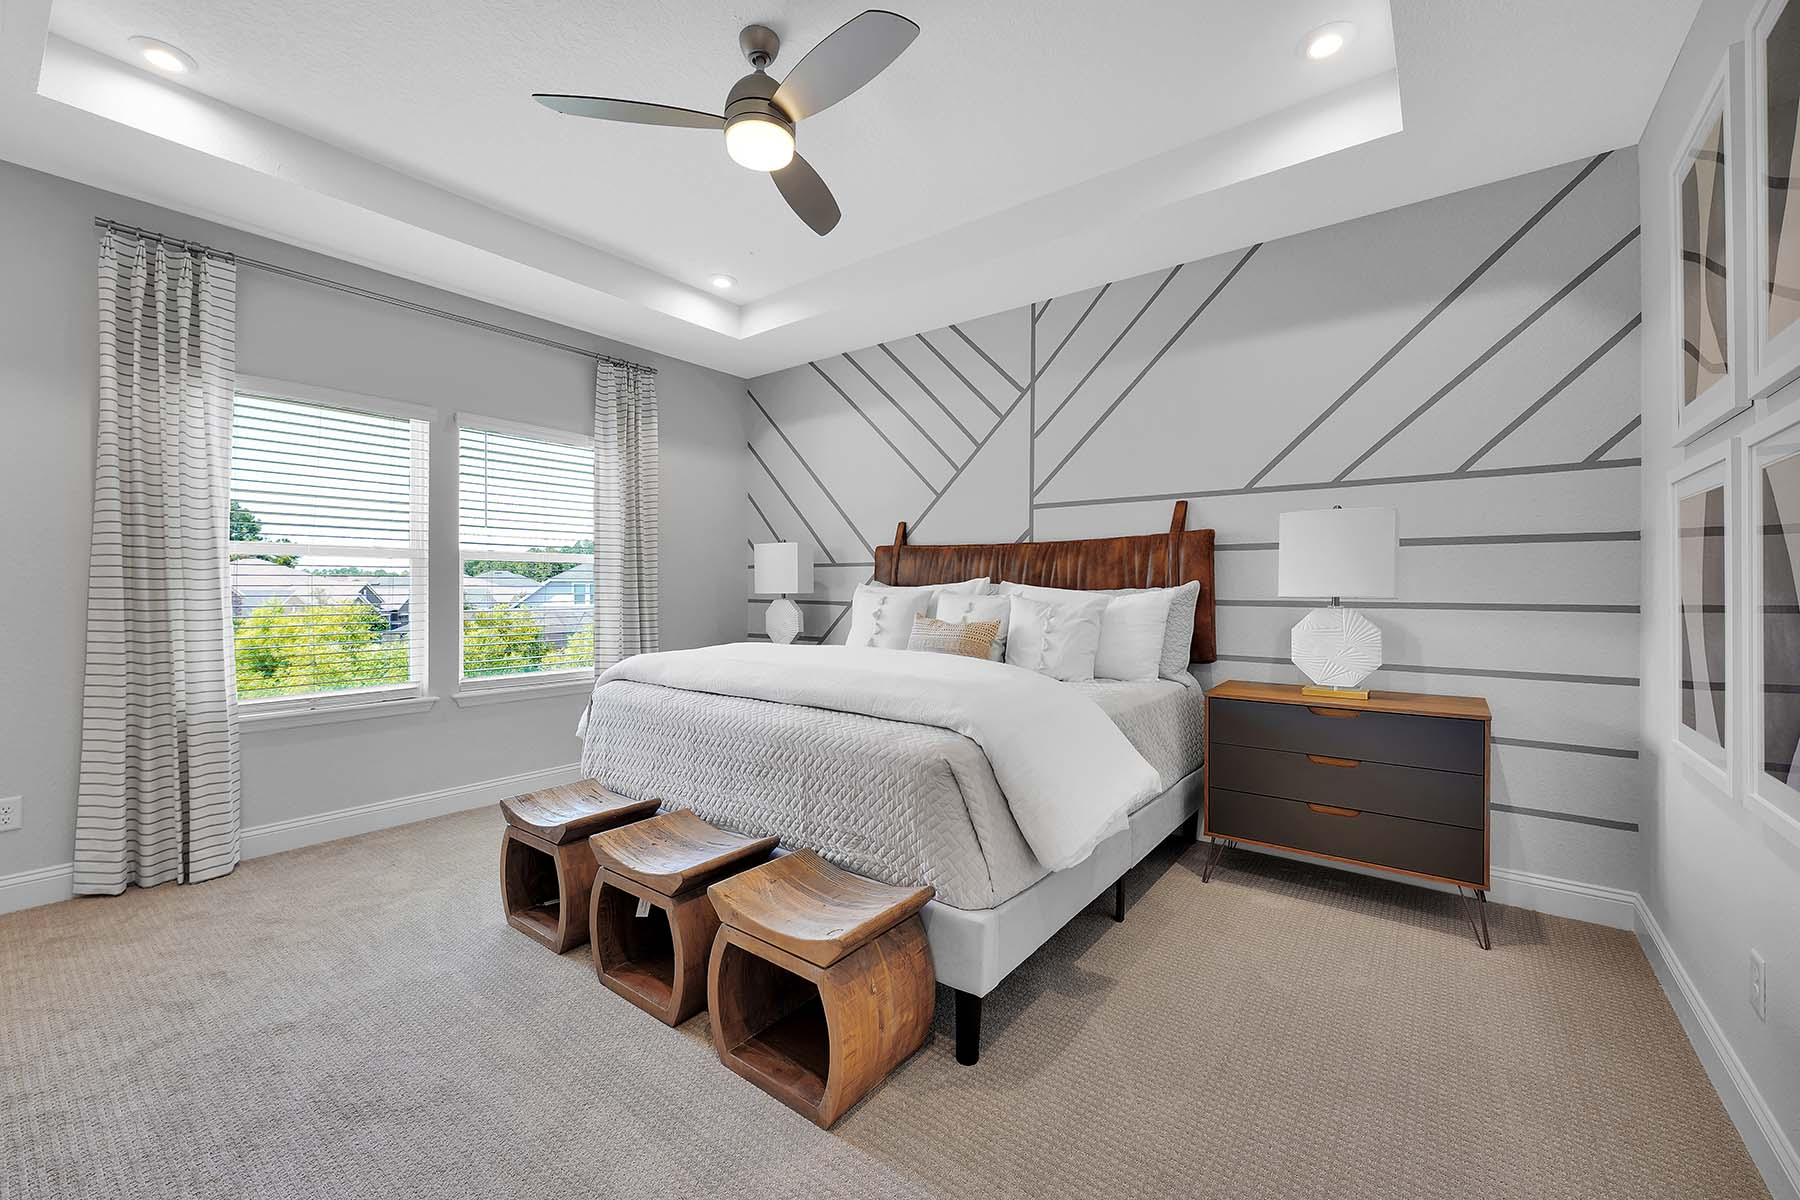 Waverly Plan Bedroom at Pablo Cove in Jacksonville Florida by Mattamy Homes